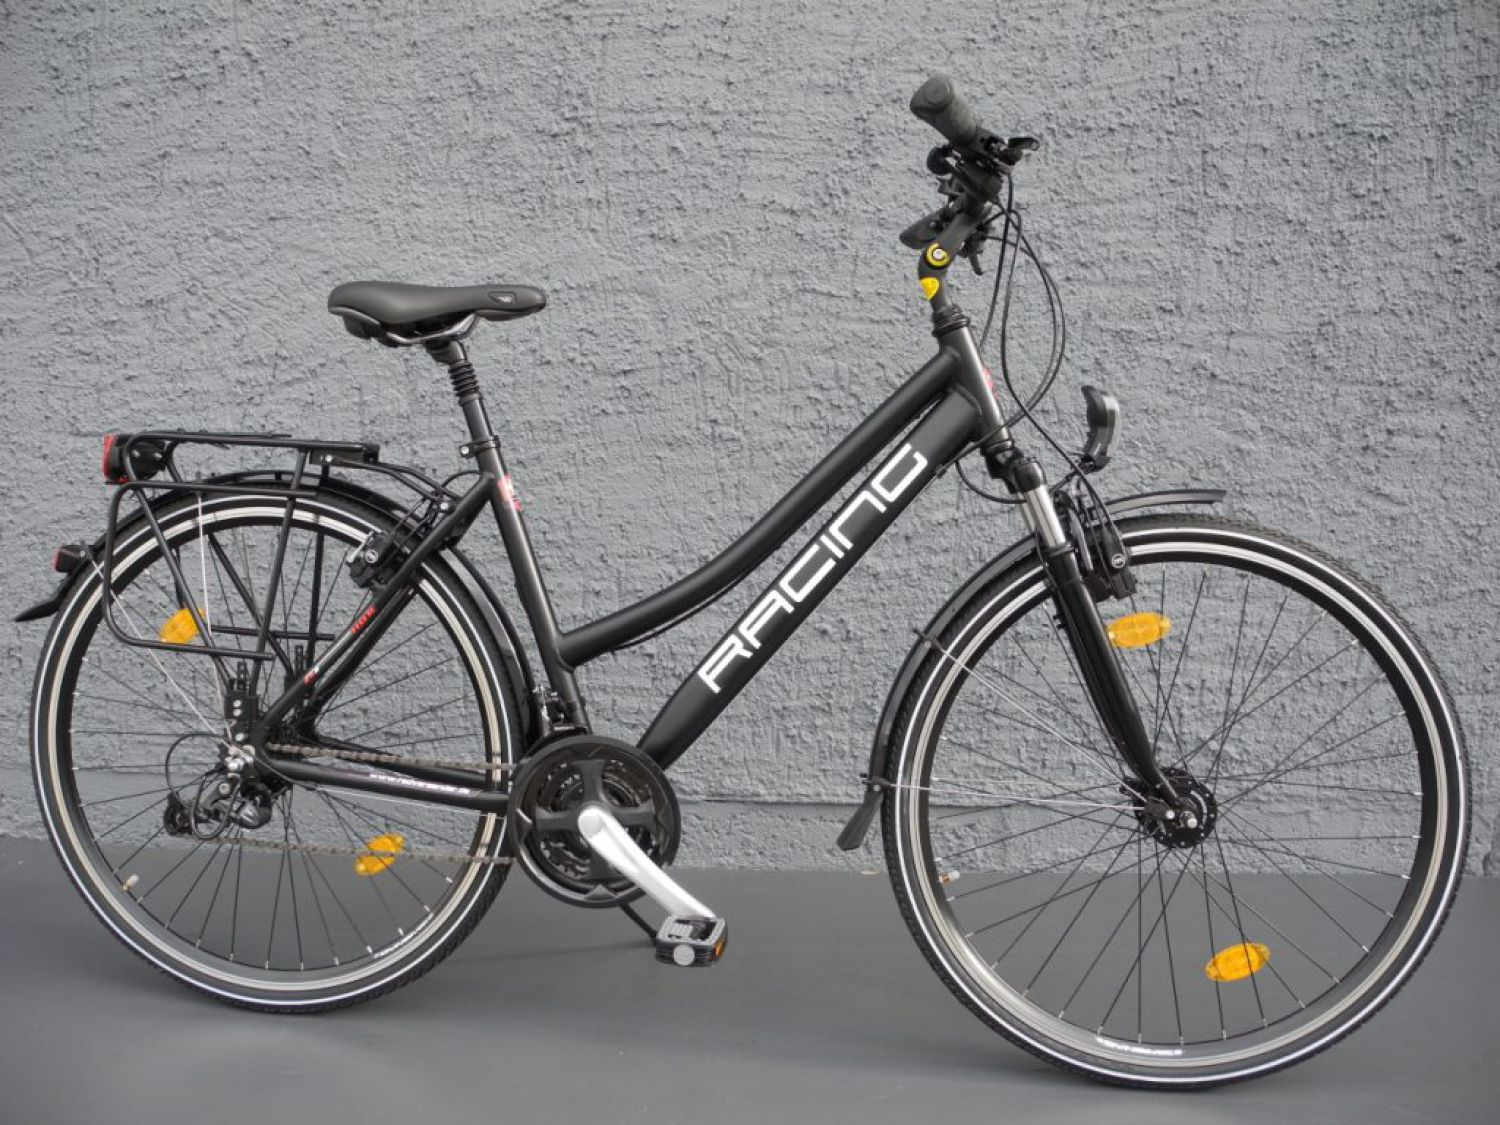 28 alu damen trekking bike fahrrad shimano deore 24 gang. Black Bedroom Furniture Sets. Home Design Ideas